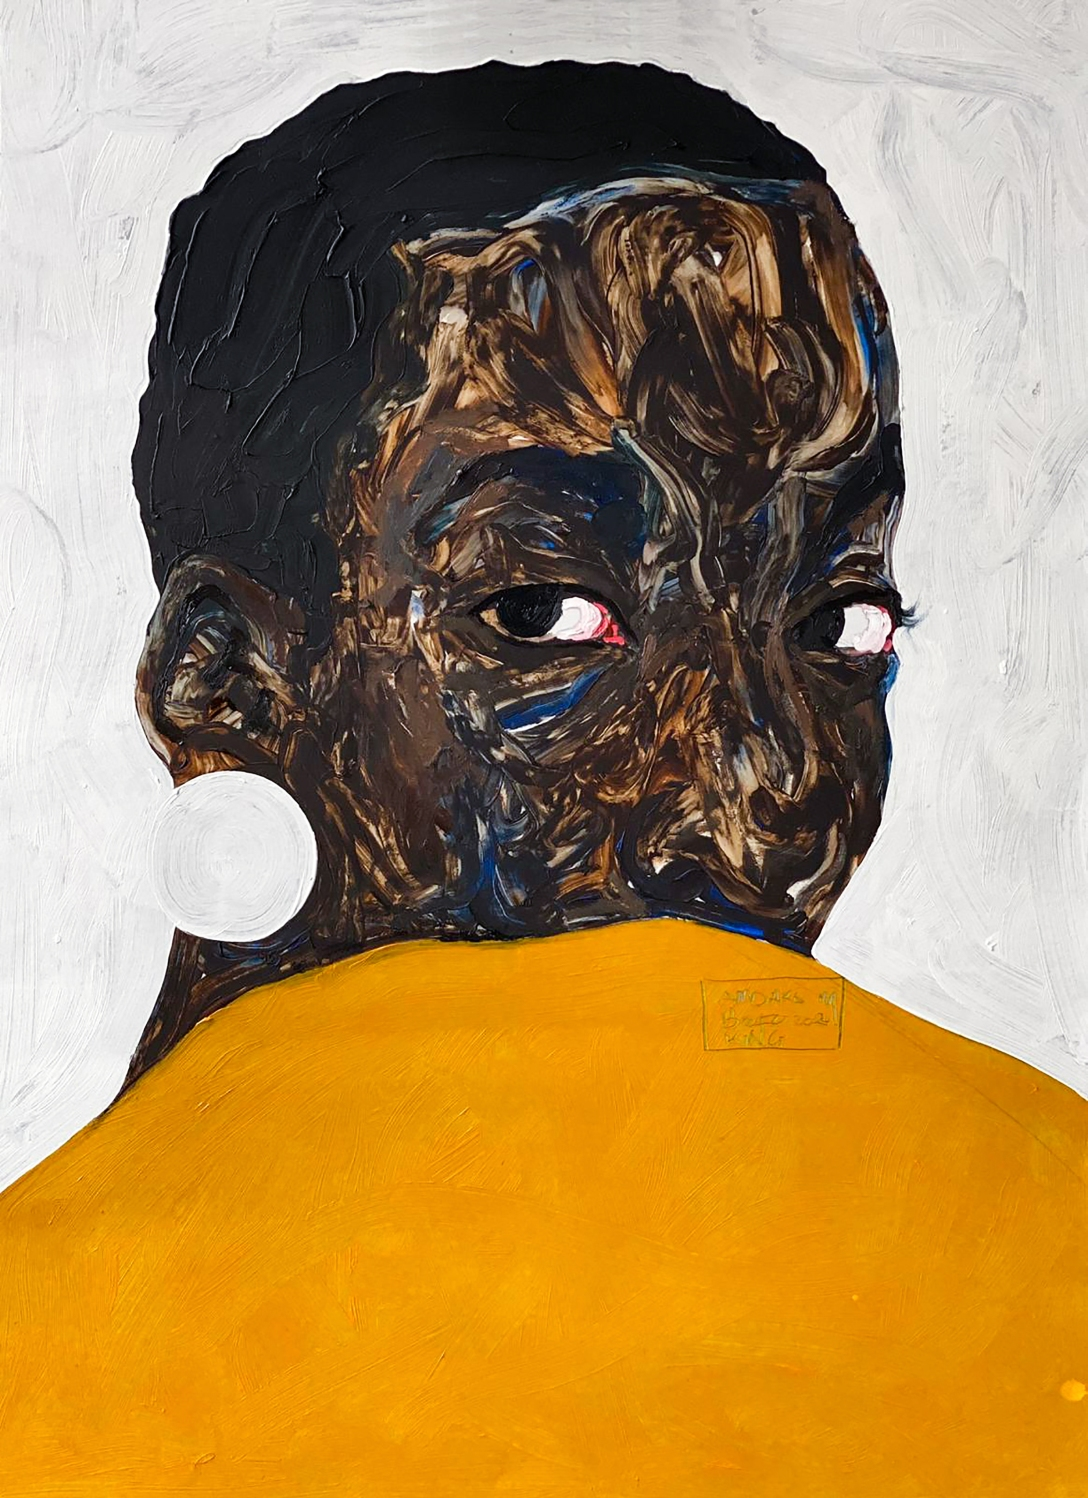 Amoako Boafo, Aurora Iradukunda, 2020, Oil on canvas, 70cm x 50cm, Courtesy of the artist and Mariane Ibrahim Gallery_